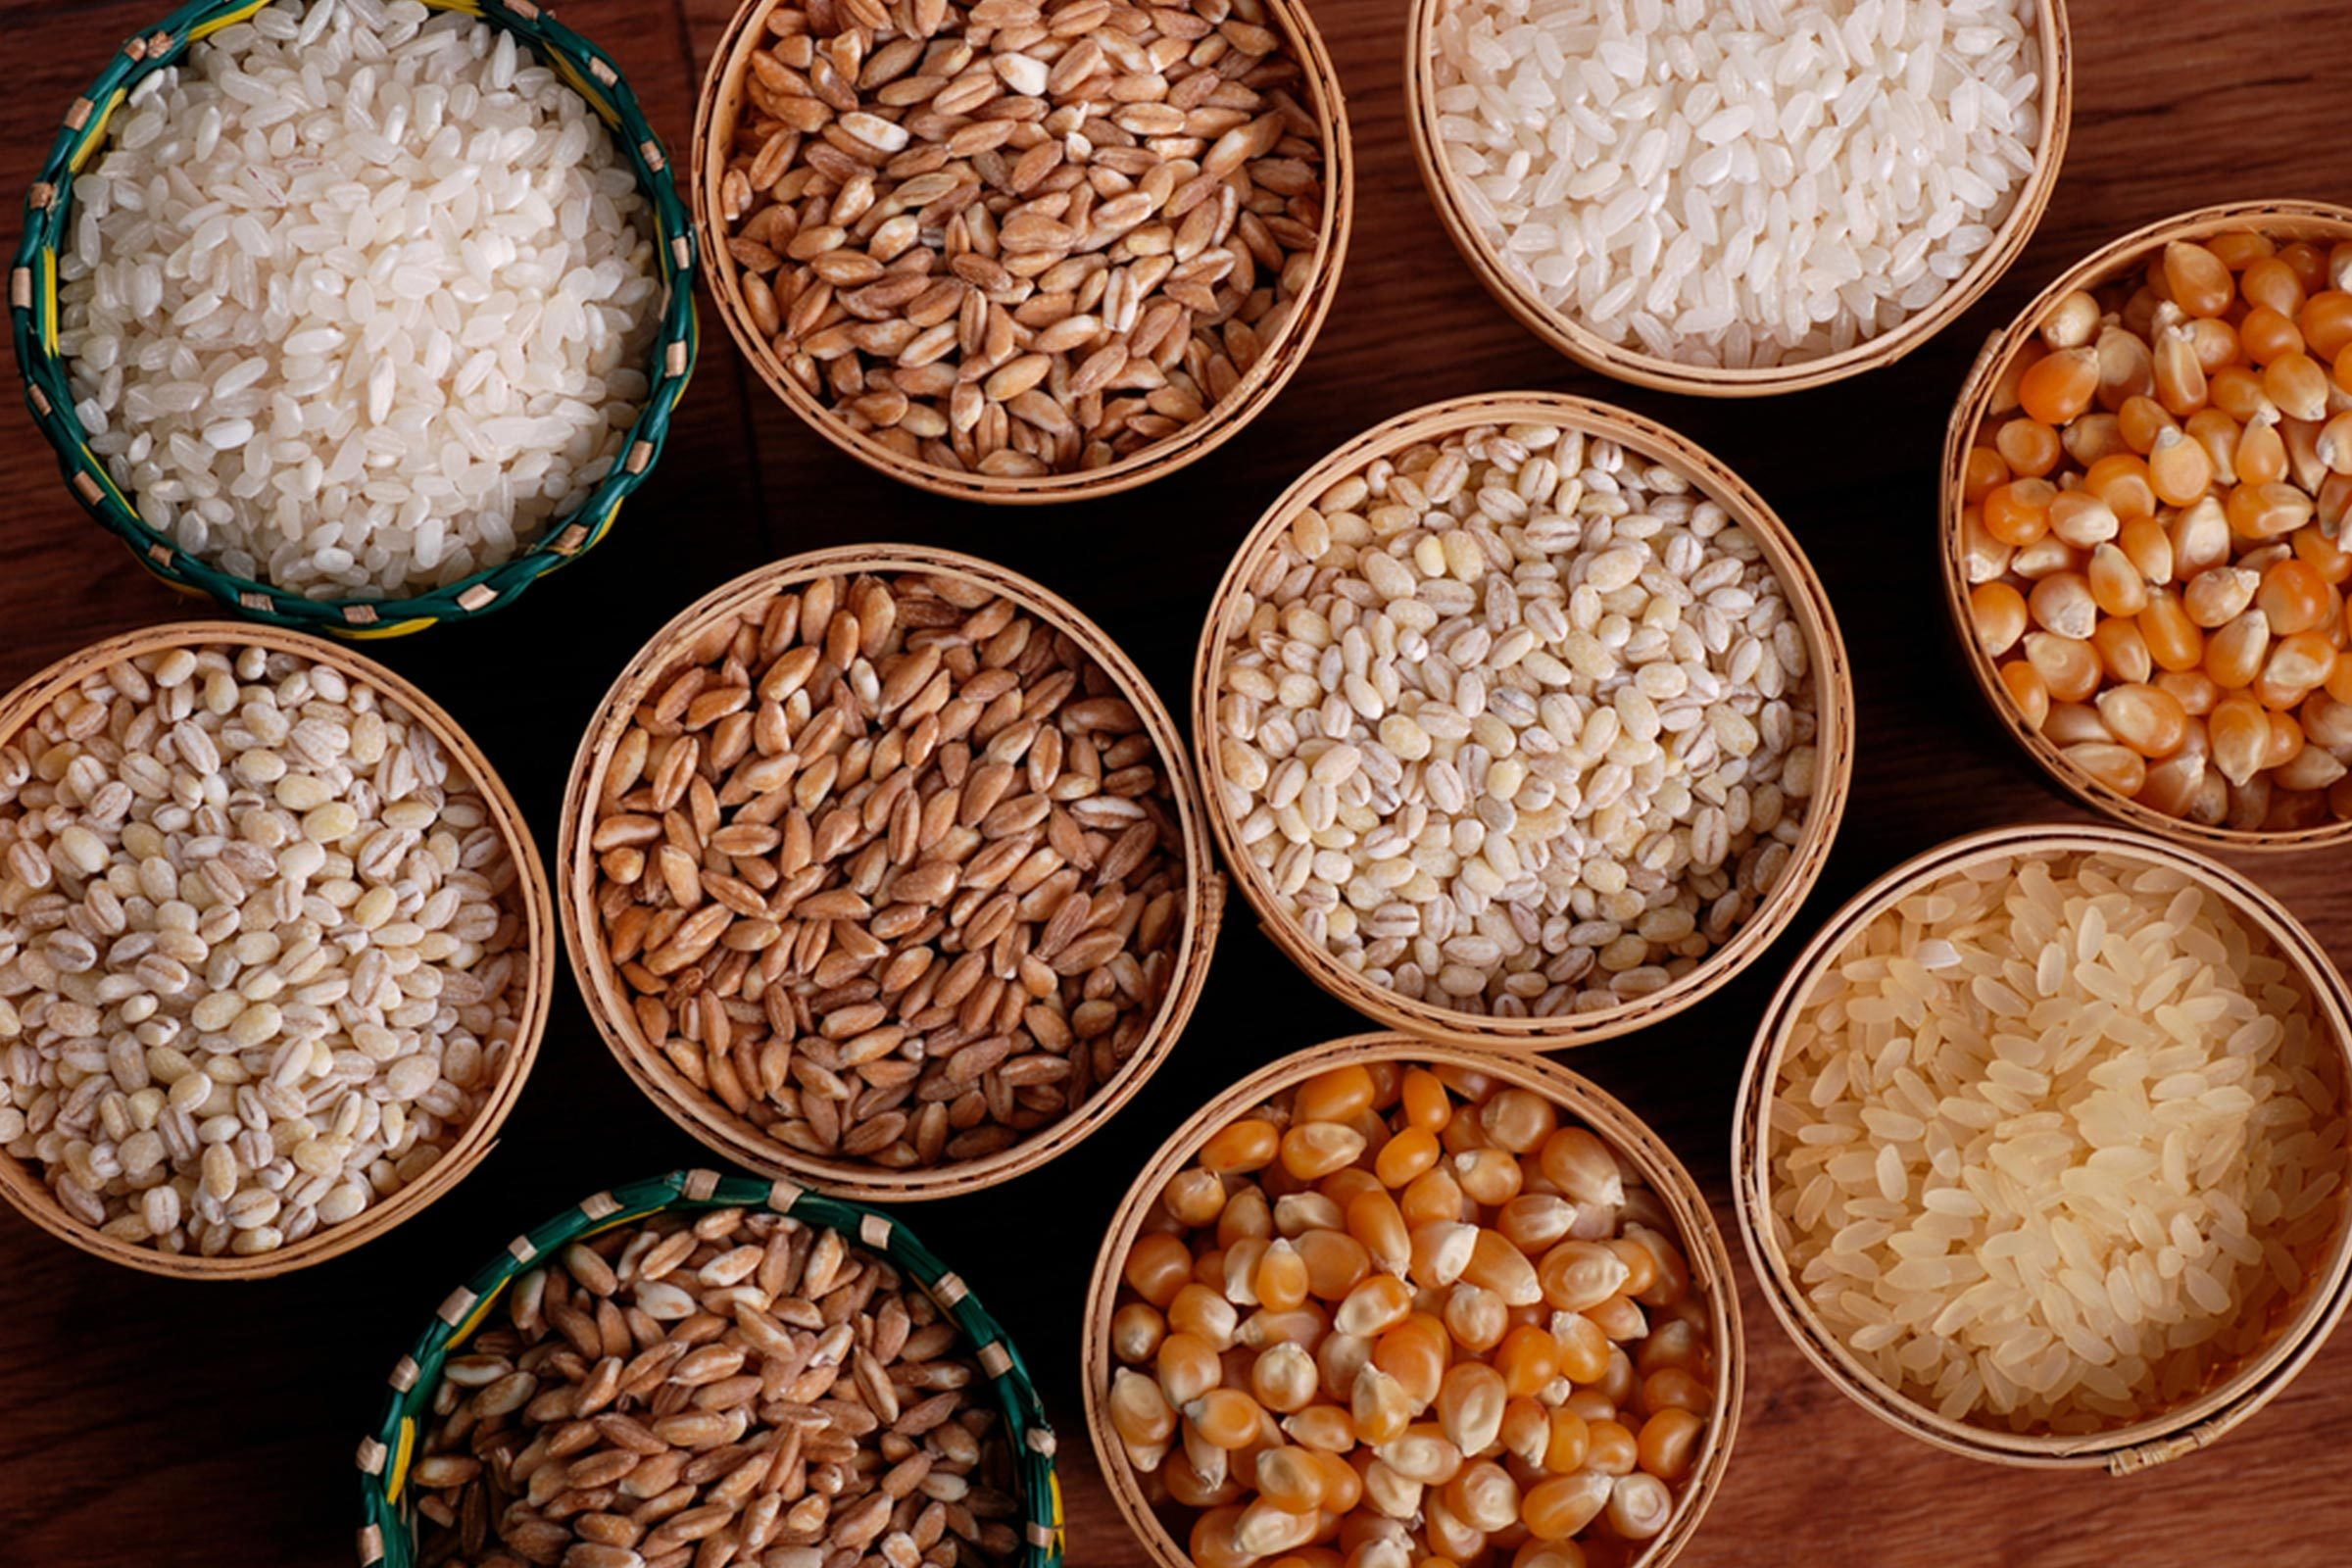 baskets of various grains